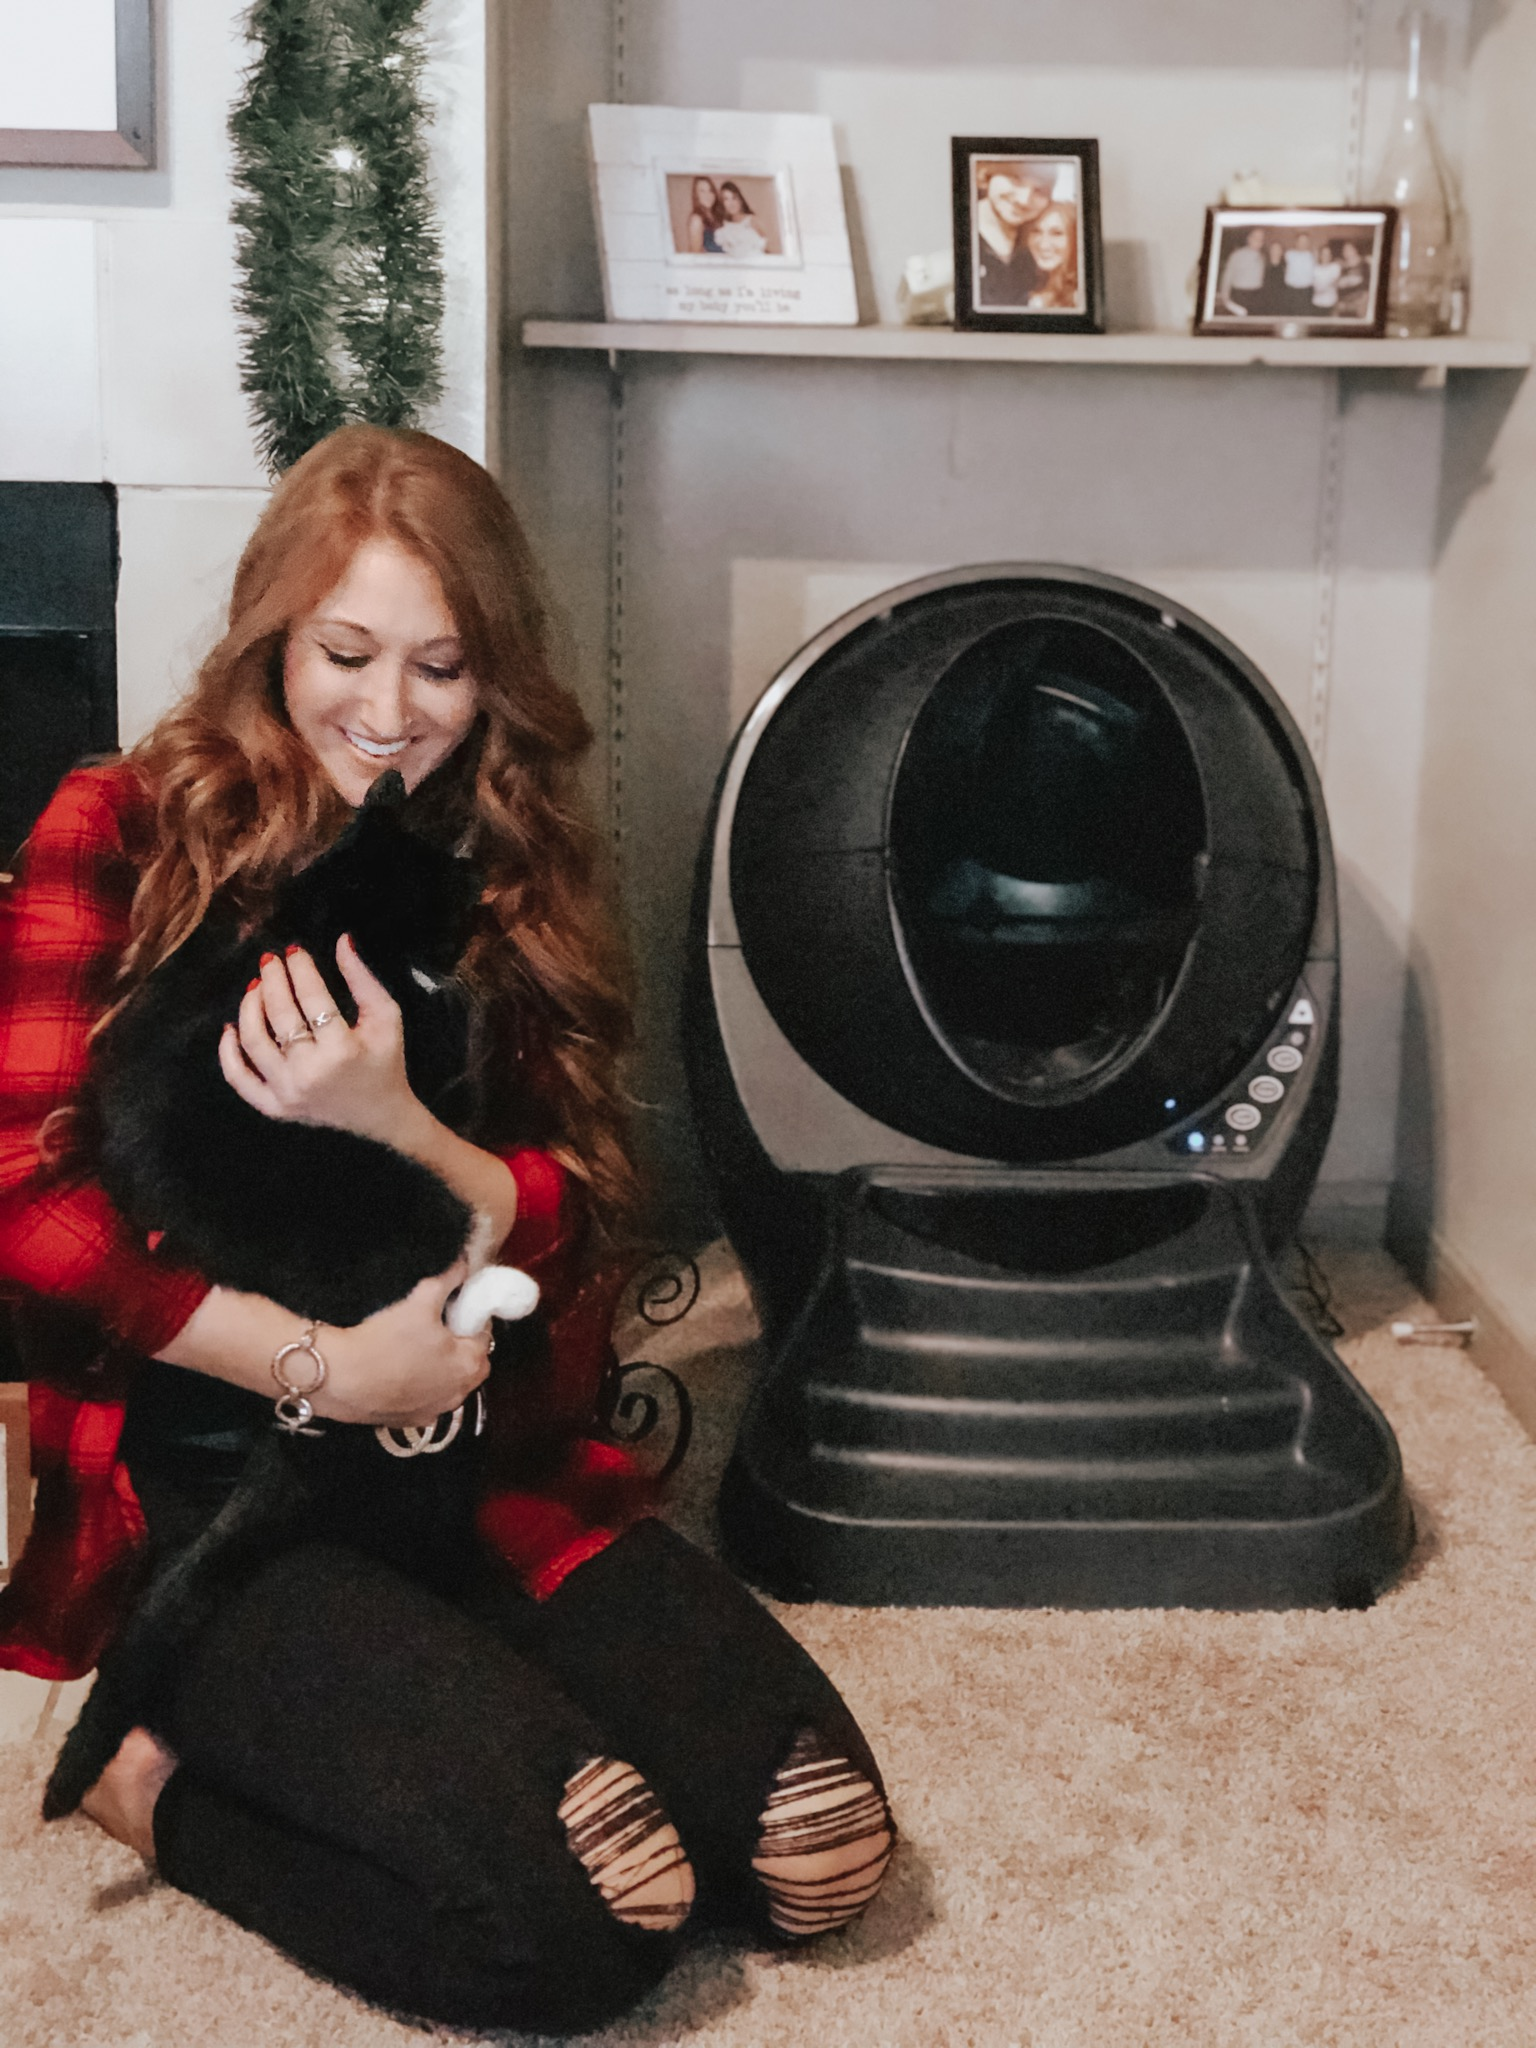 Keeping My Home Odor-Free with Litter Robot | Chaos and Coffee